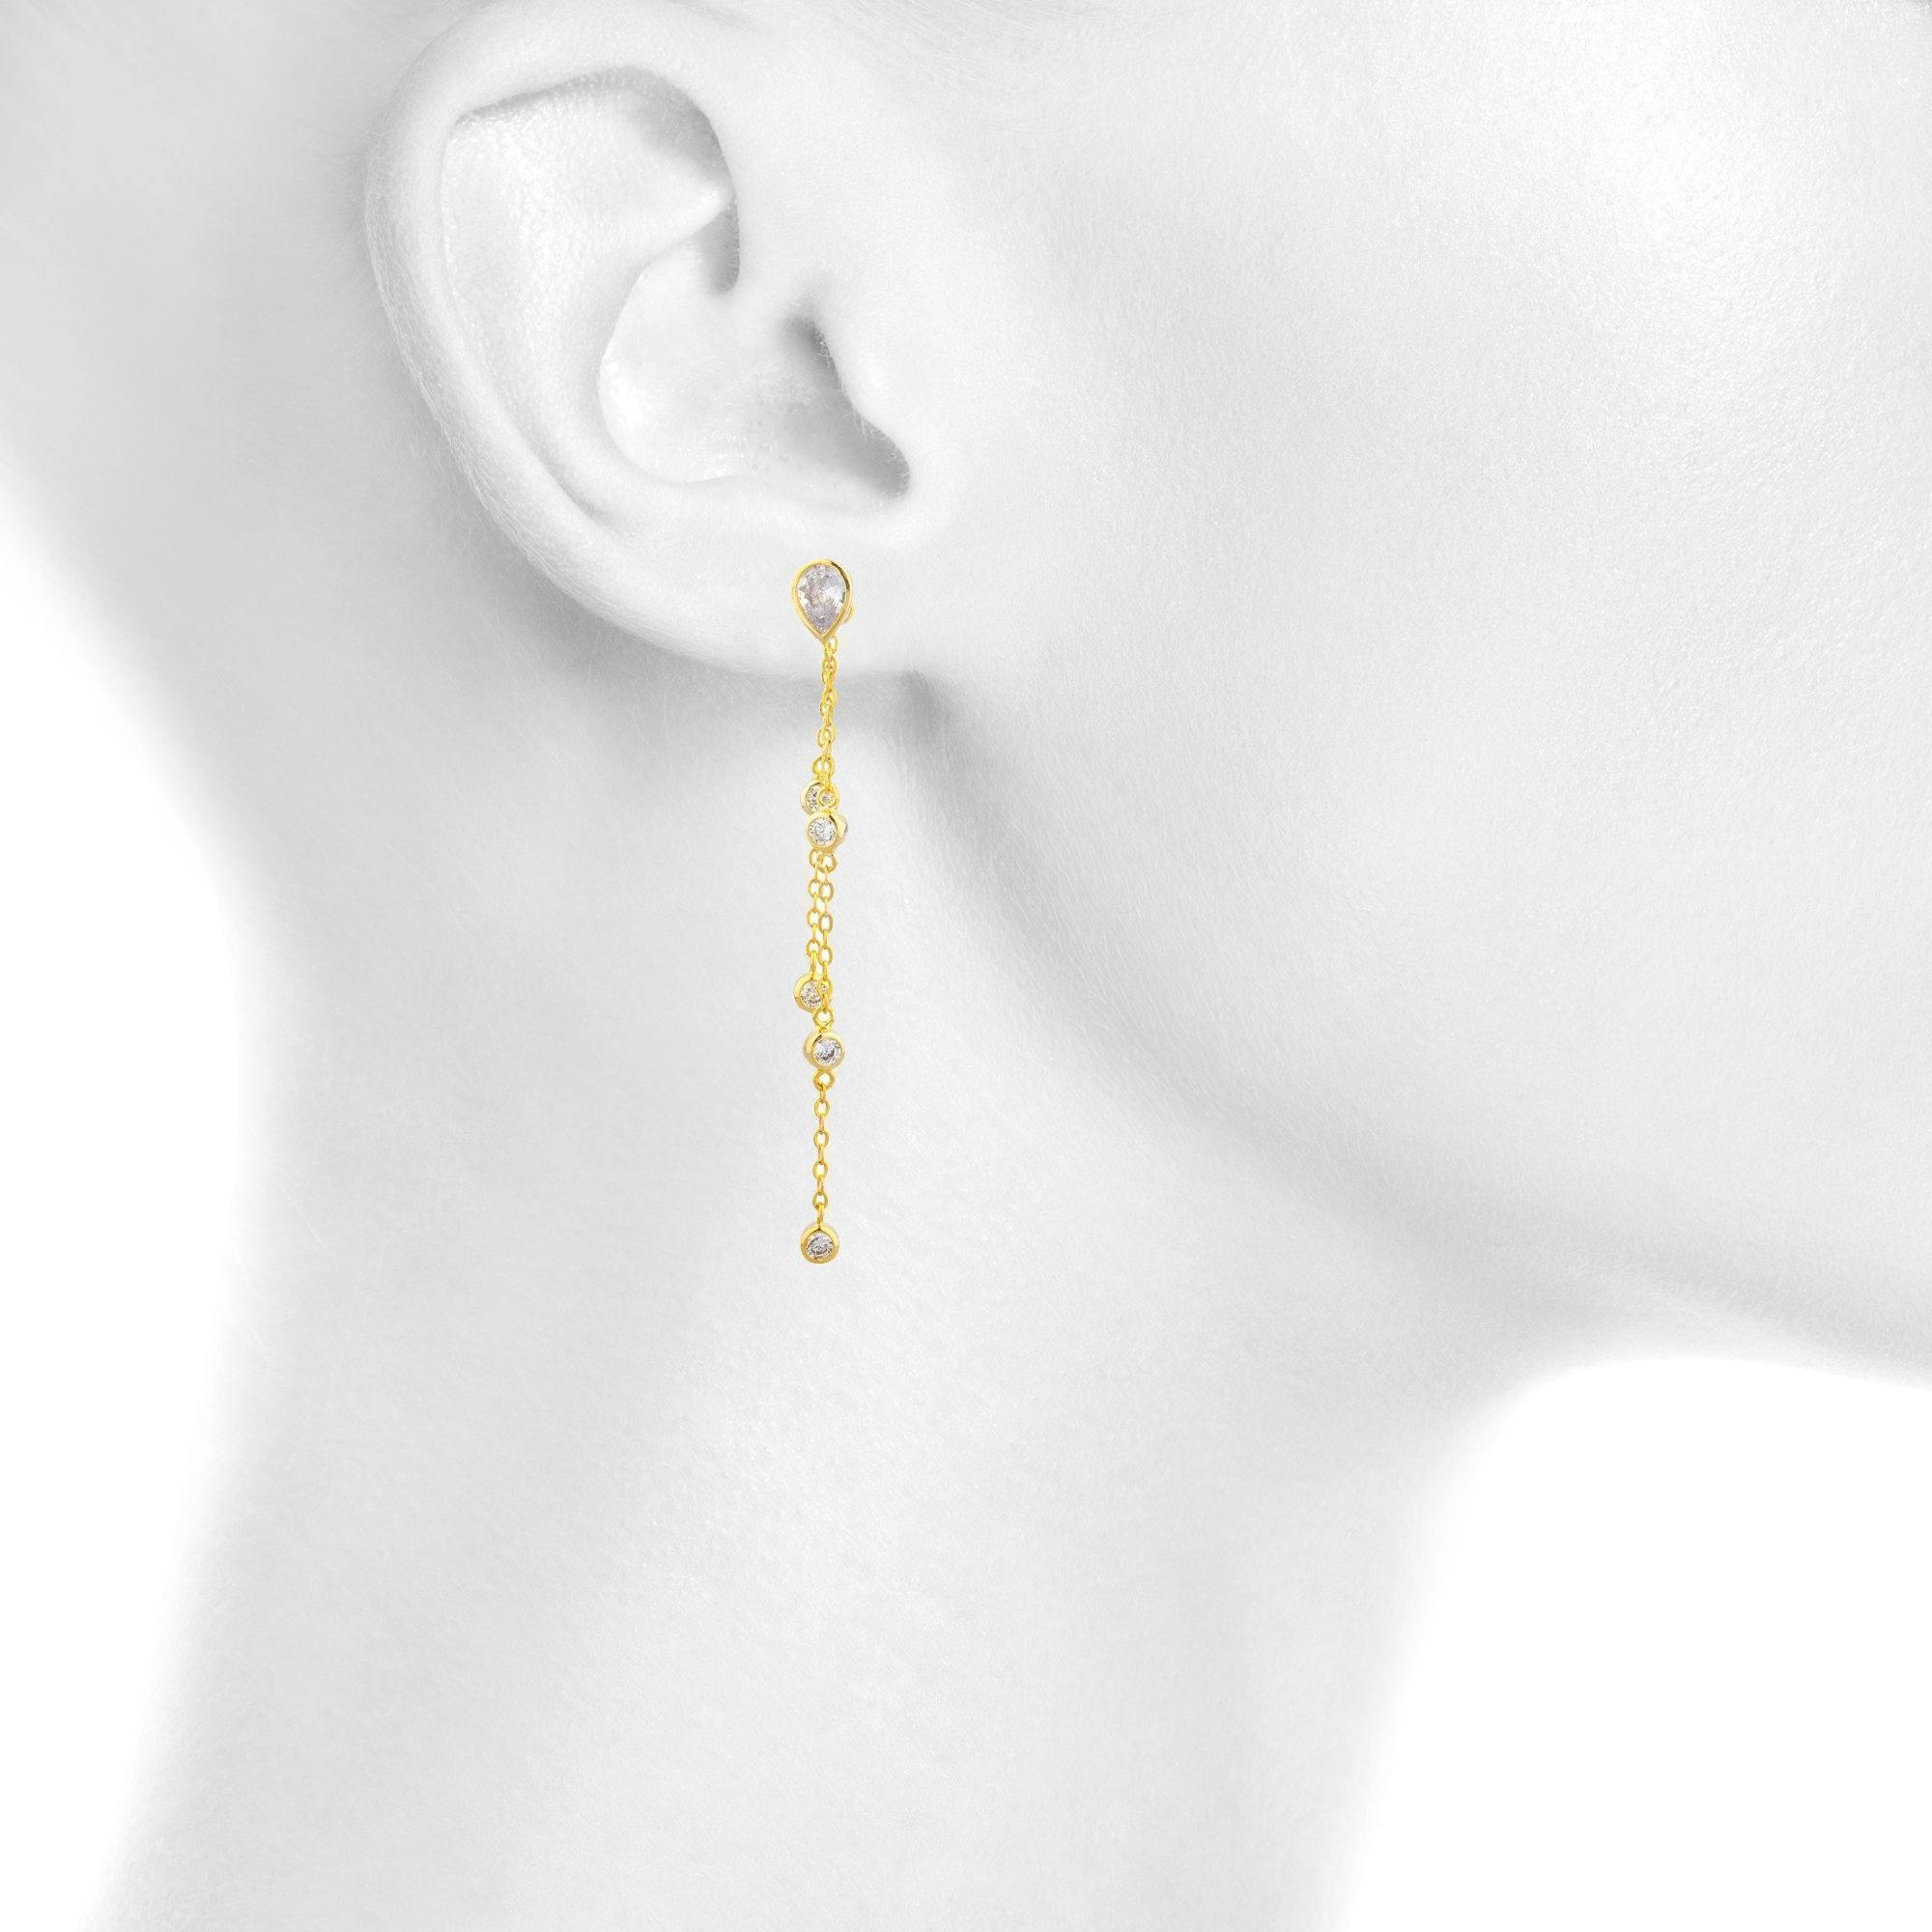 Kira Dangle Earring - Taylor Adorn